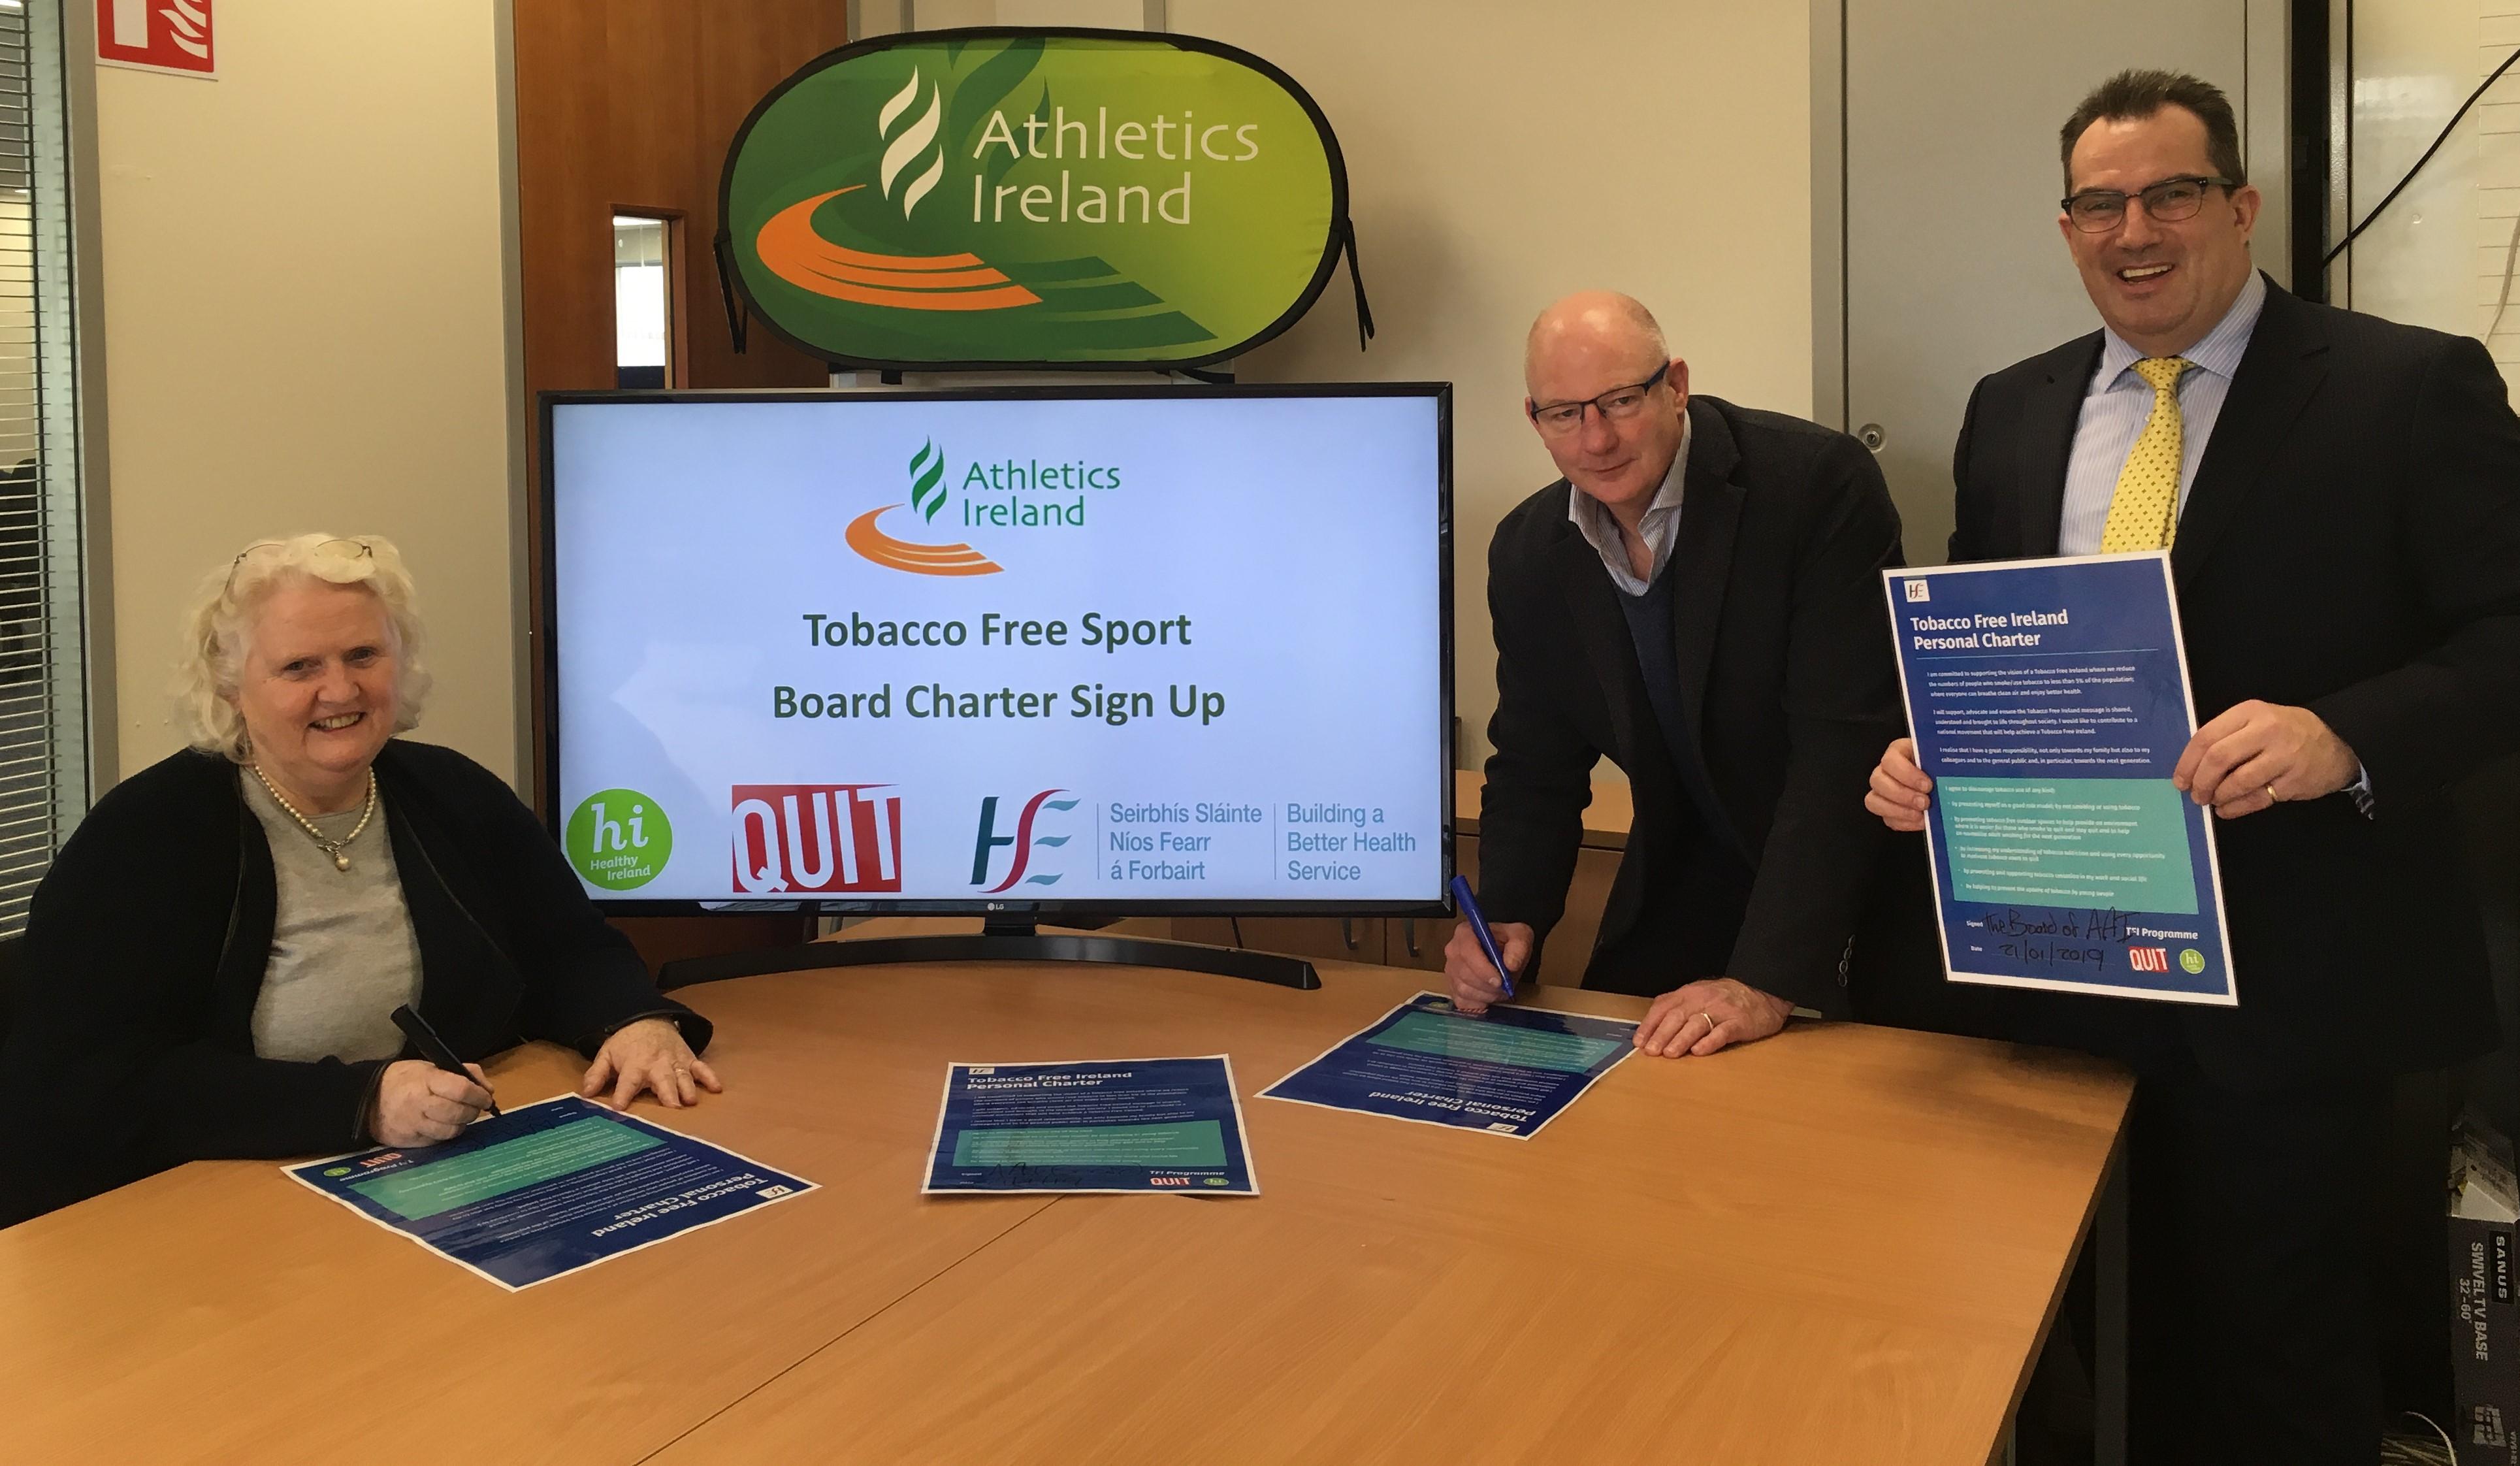 Athletics Ireland commits to the Tobacco Free Sport charter